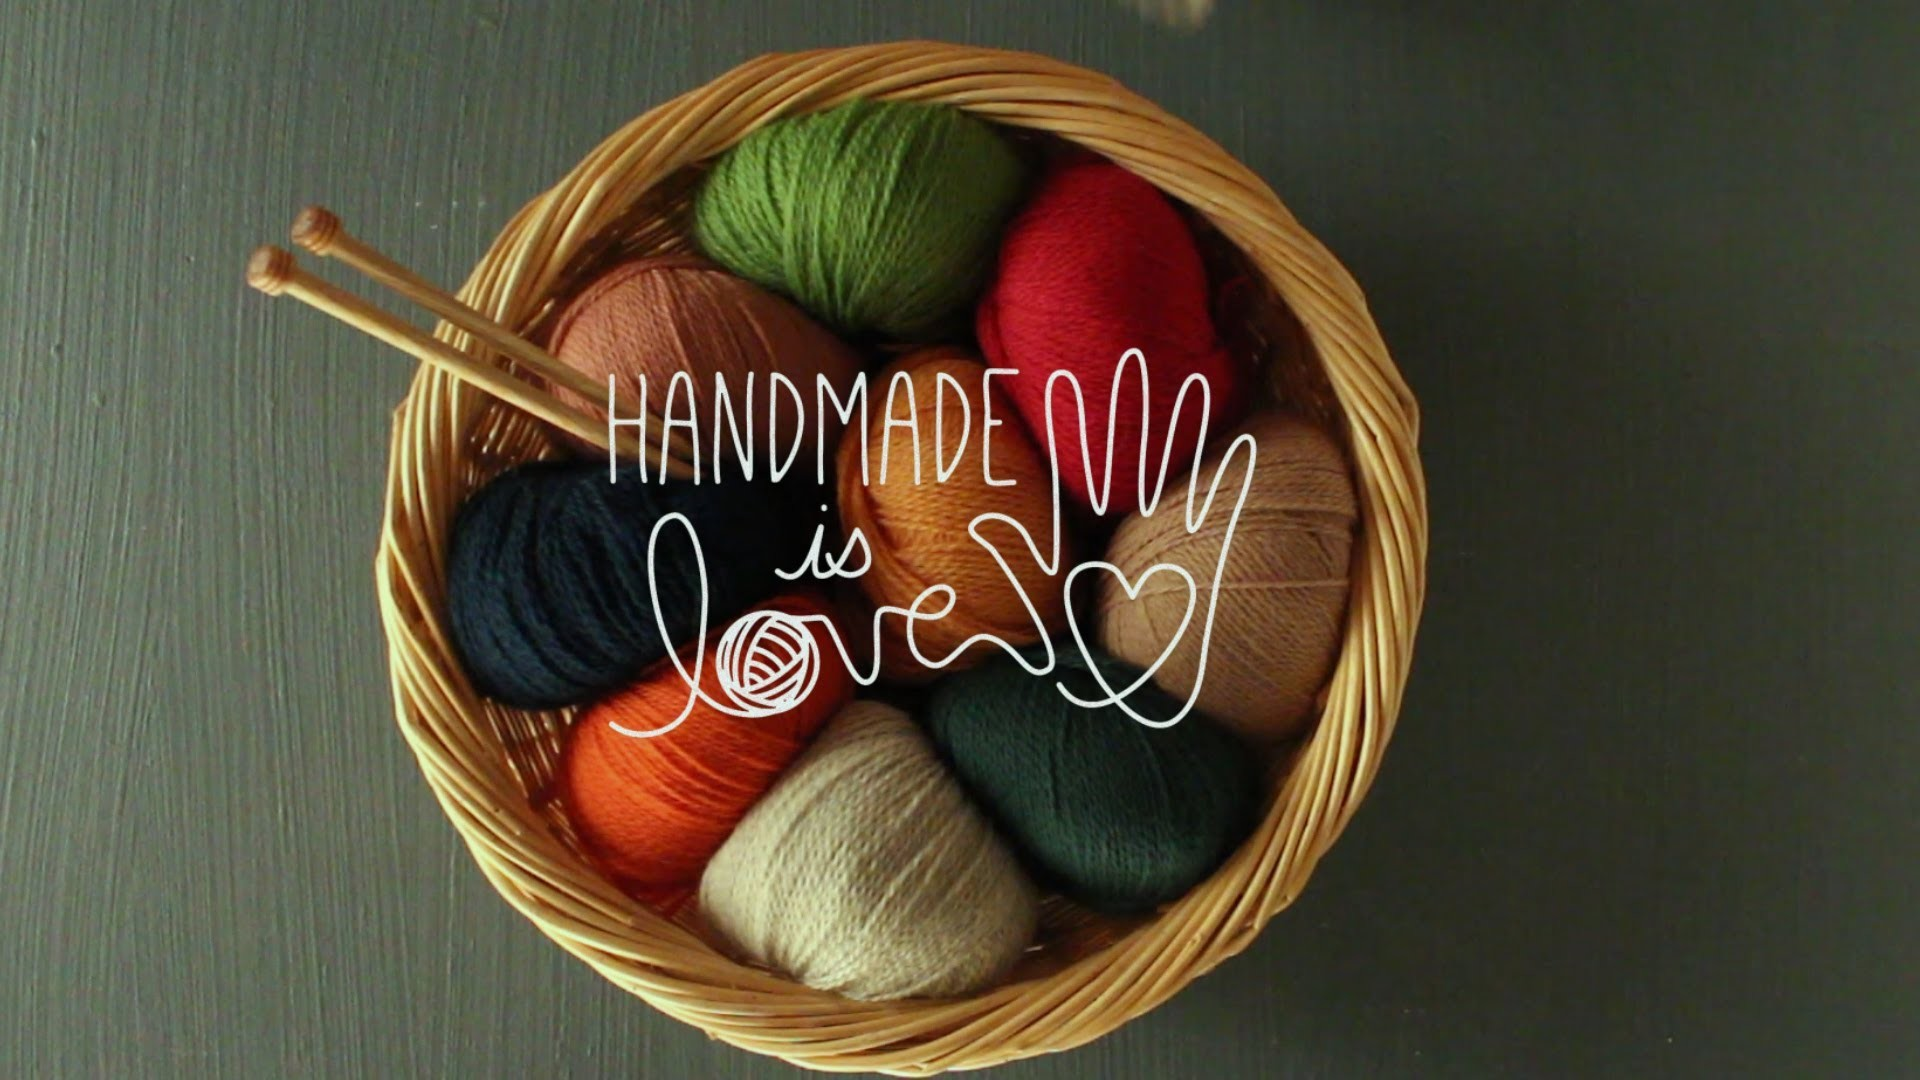 Handmade is Love by Knitpicks